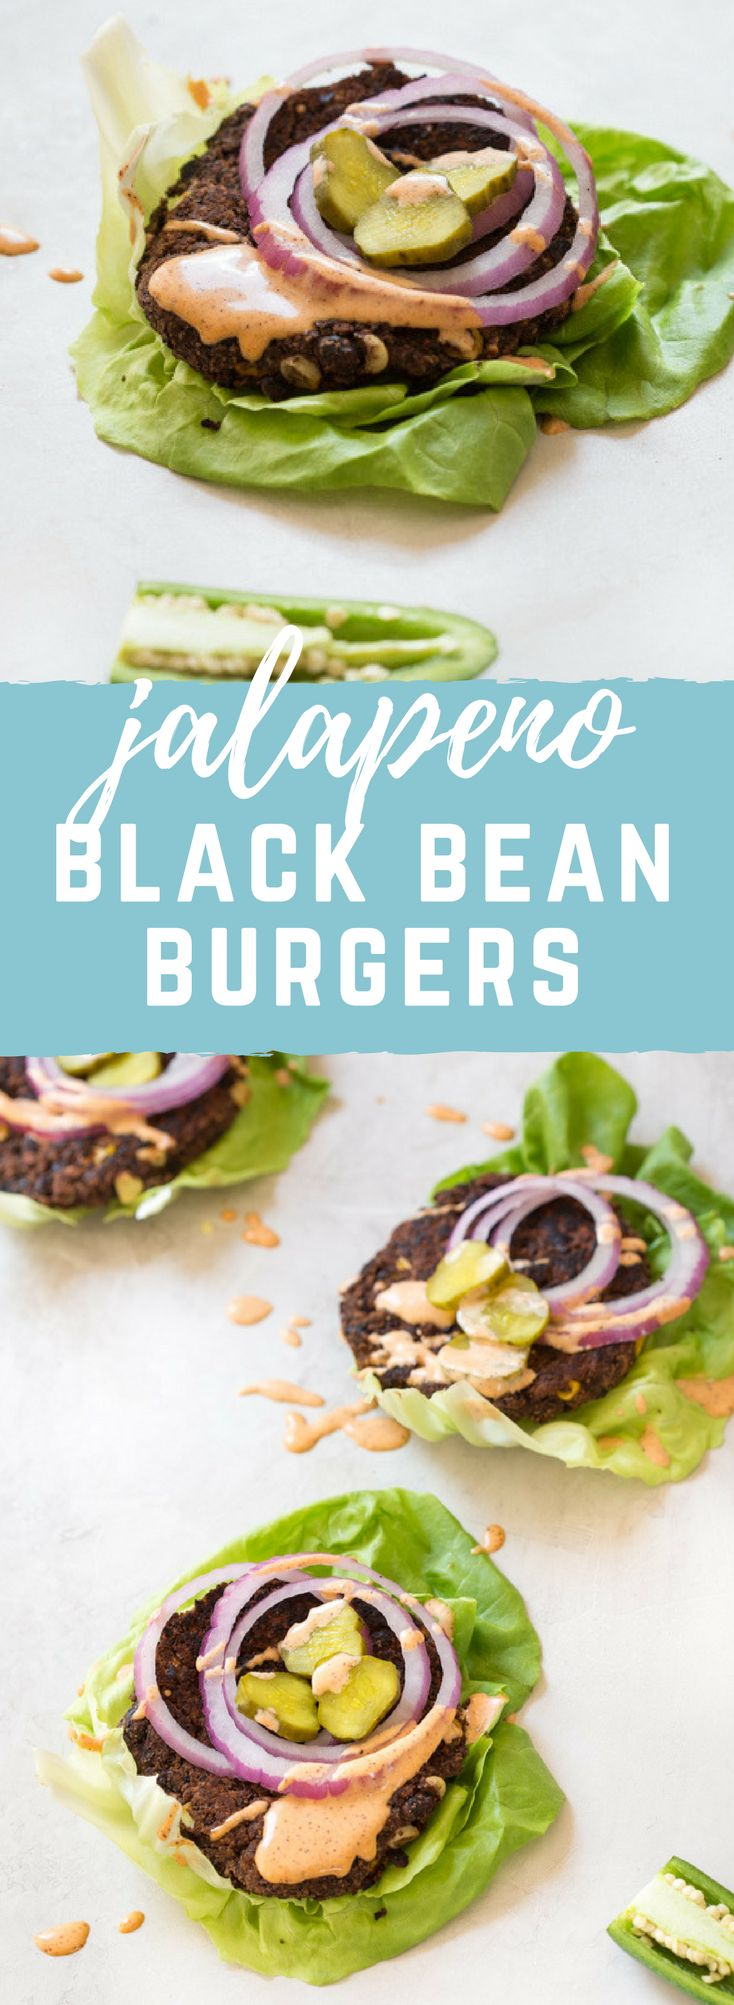 114 best Summer Recipes images on Pinterest | Appetizer recipes ...